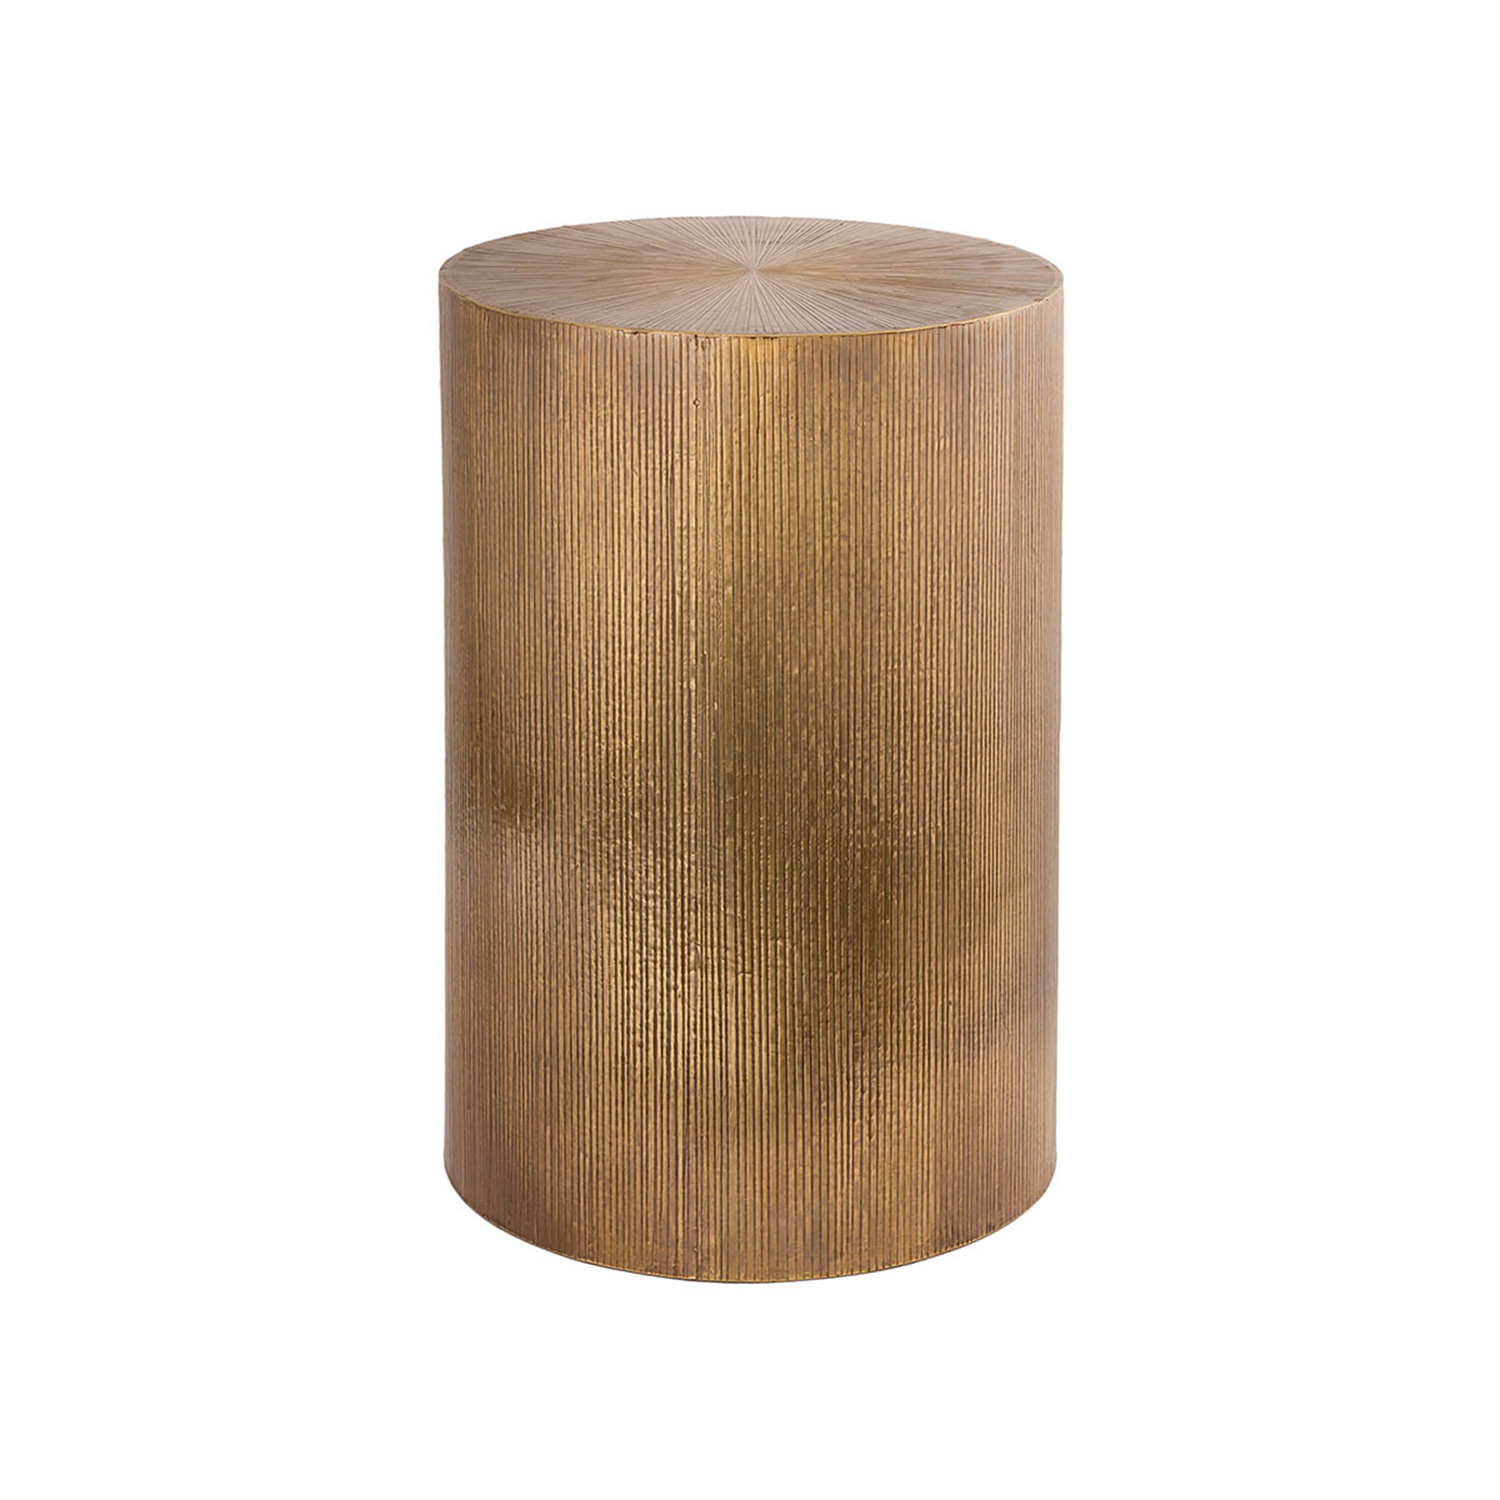 dimond home gold bar antique brass accent table bellacor hover zoom large cream wall clock outdoor side with ice bucket long thin gaming dock wooden patio chairs grey end target